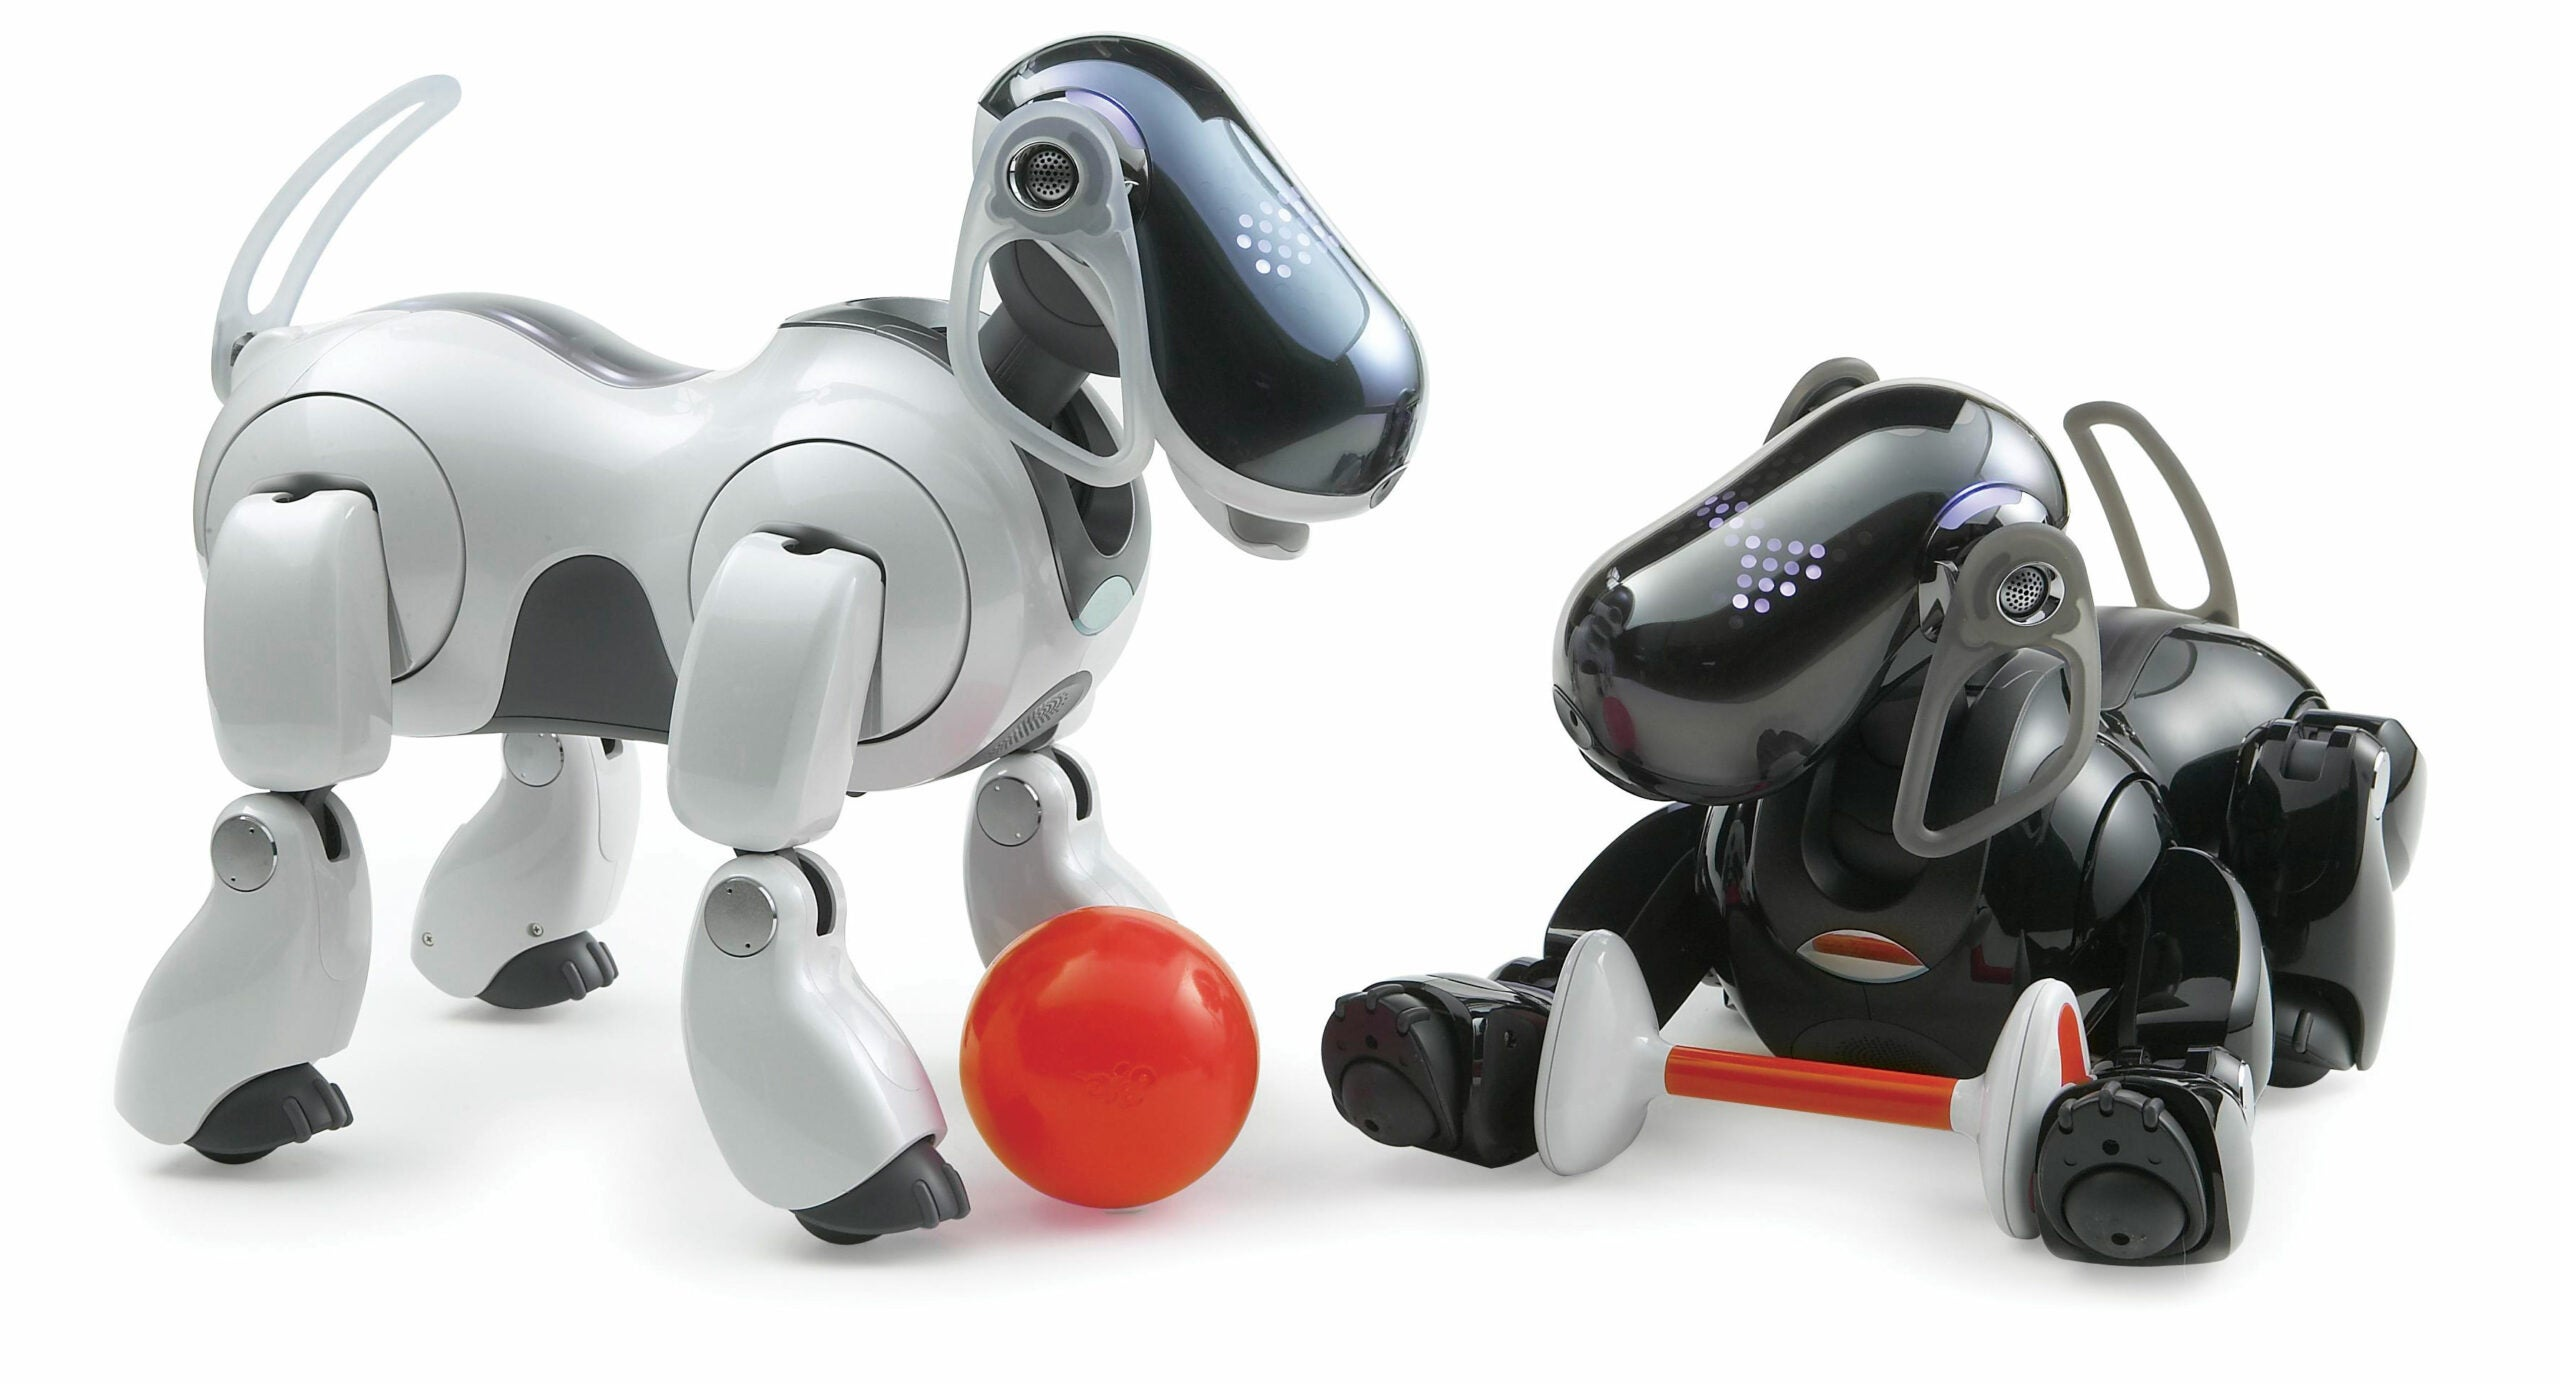 Robot Pets Have a Leg Up on Fido